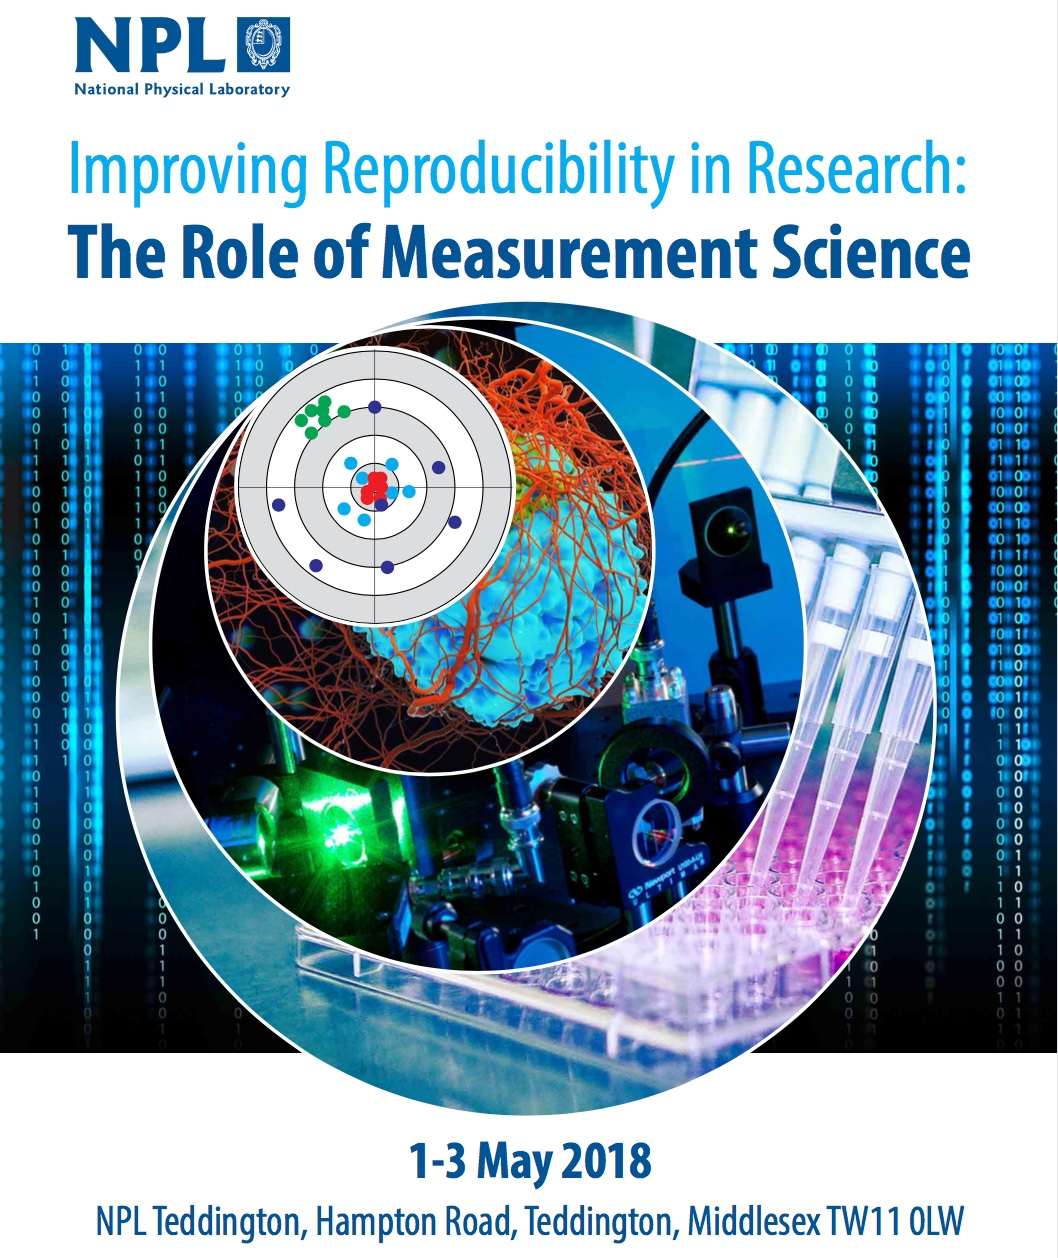 Improving Reproducibility in Research: The Role of Measurement Science